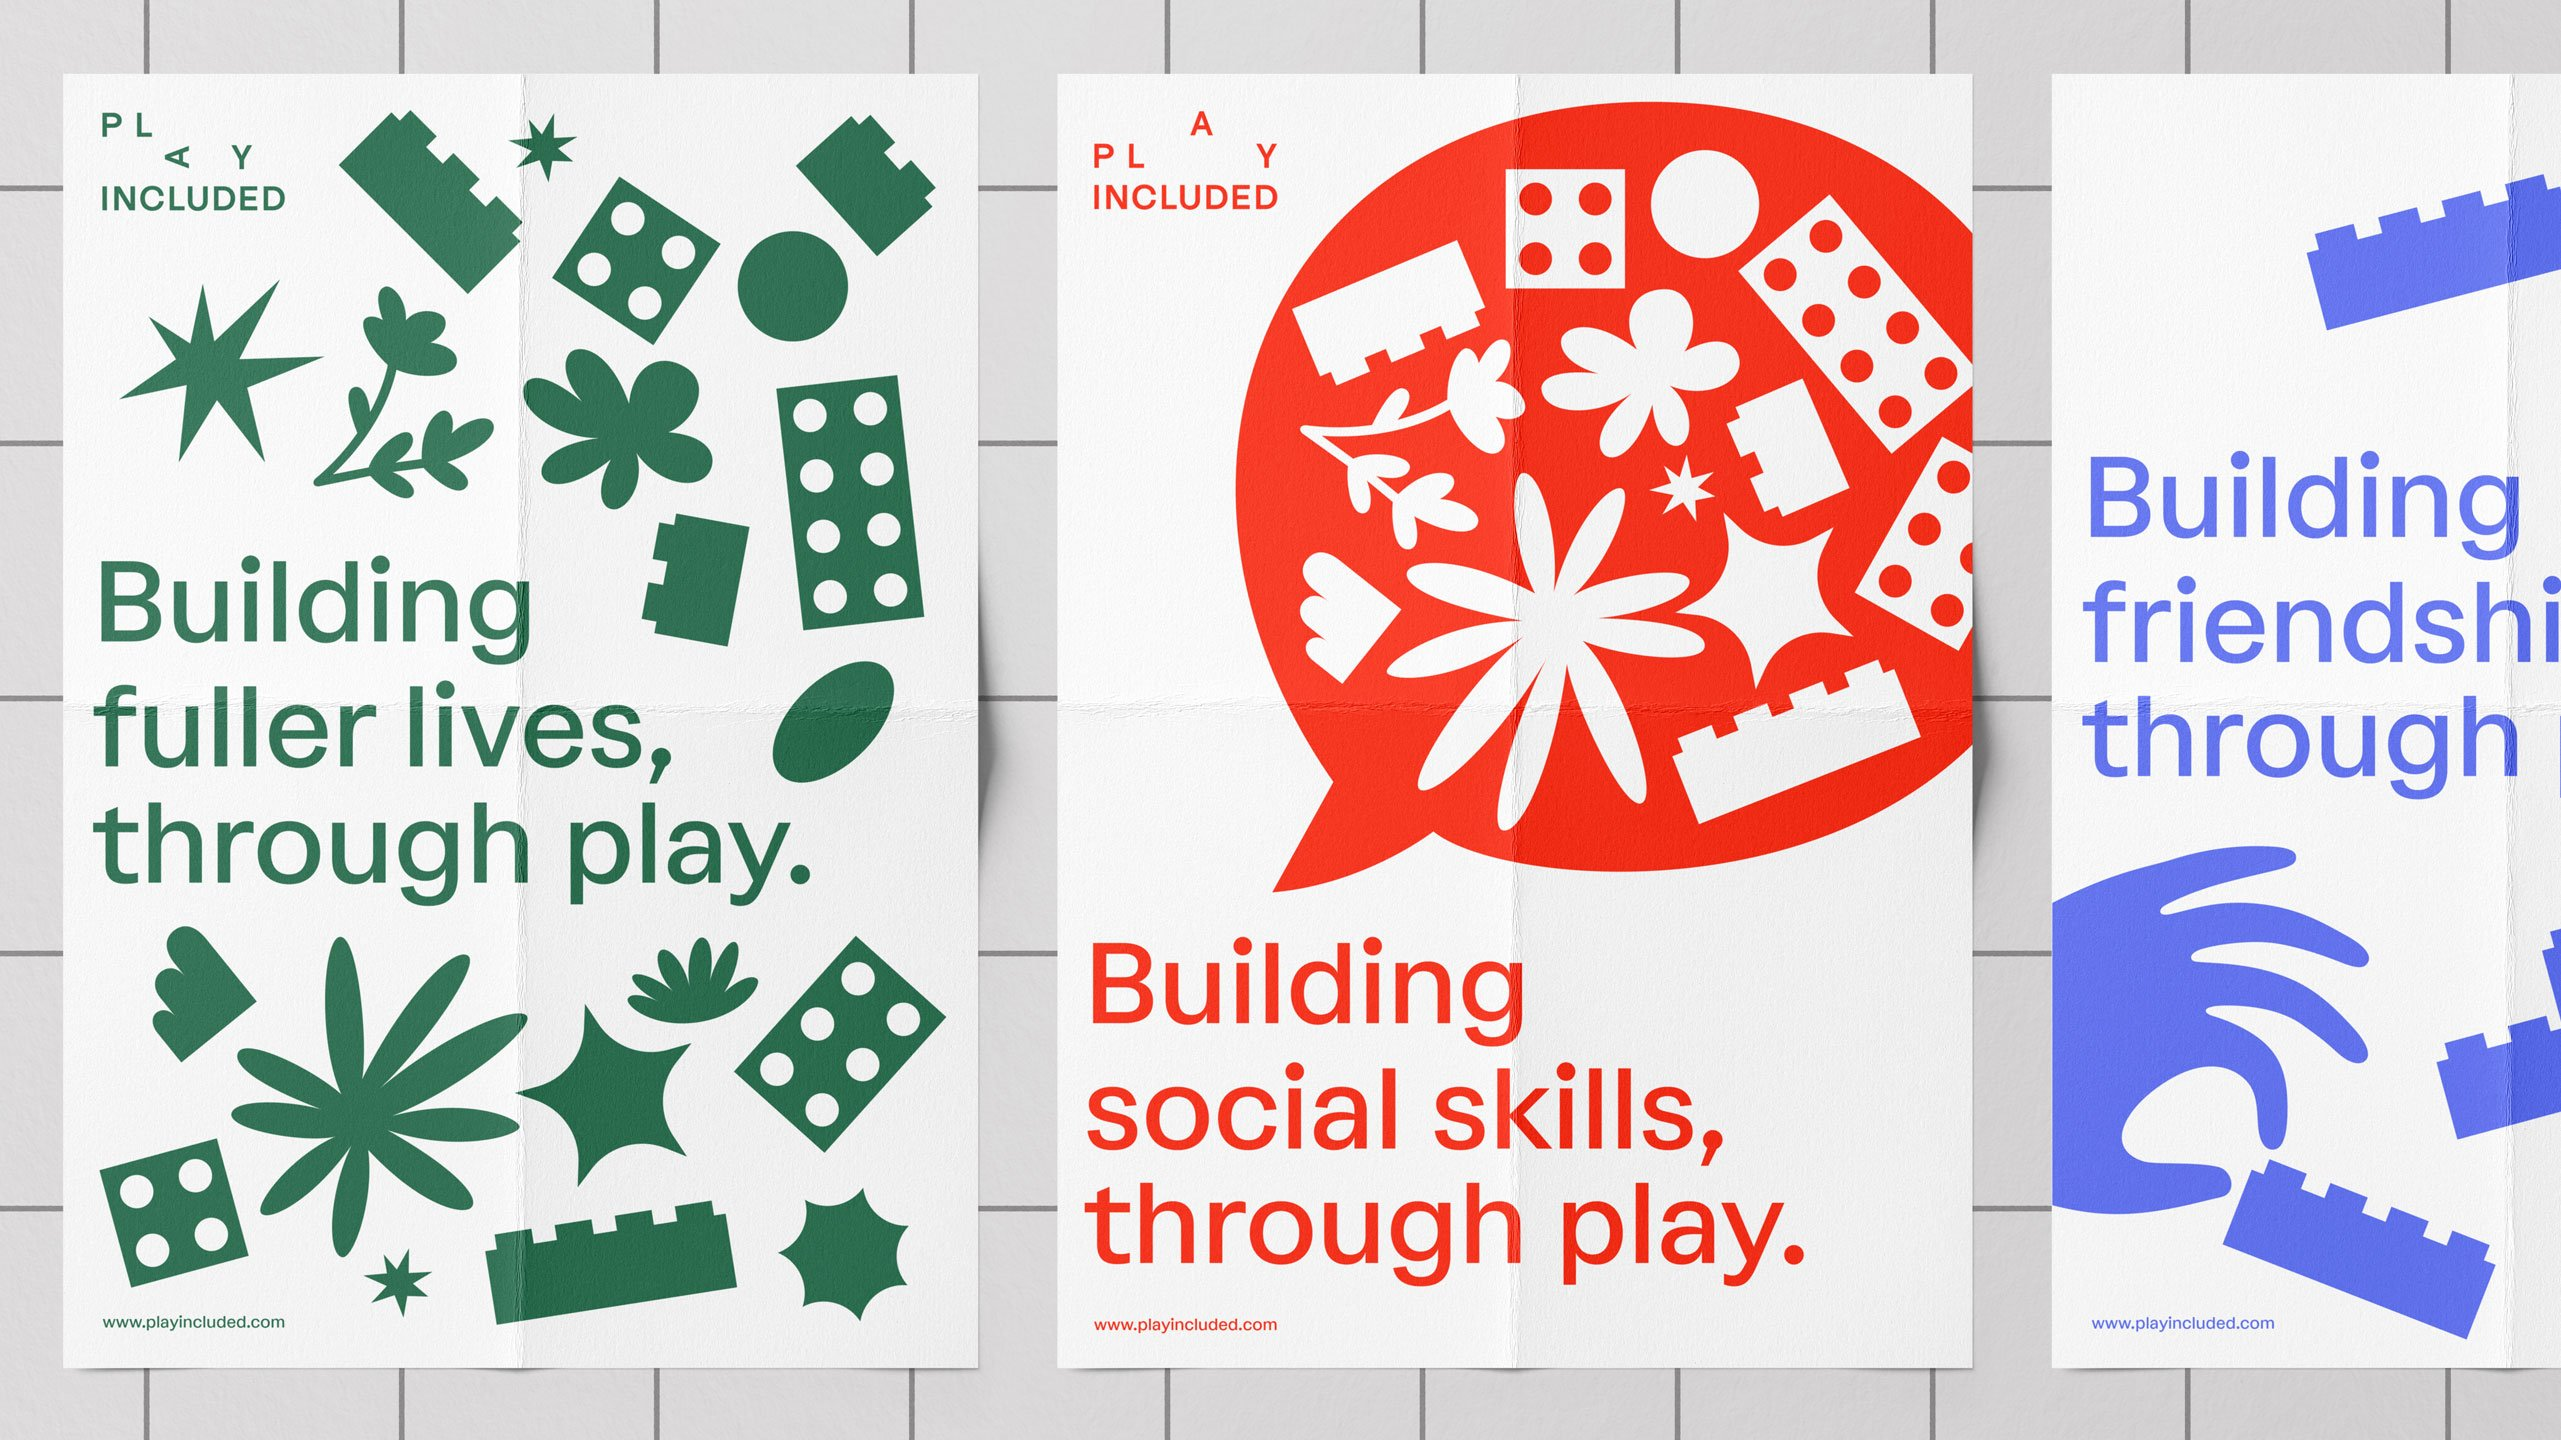 03-PLAY-INCLUDED-VISUAL-posters-60